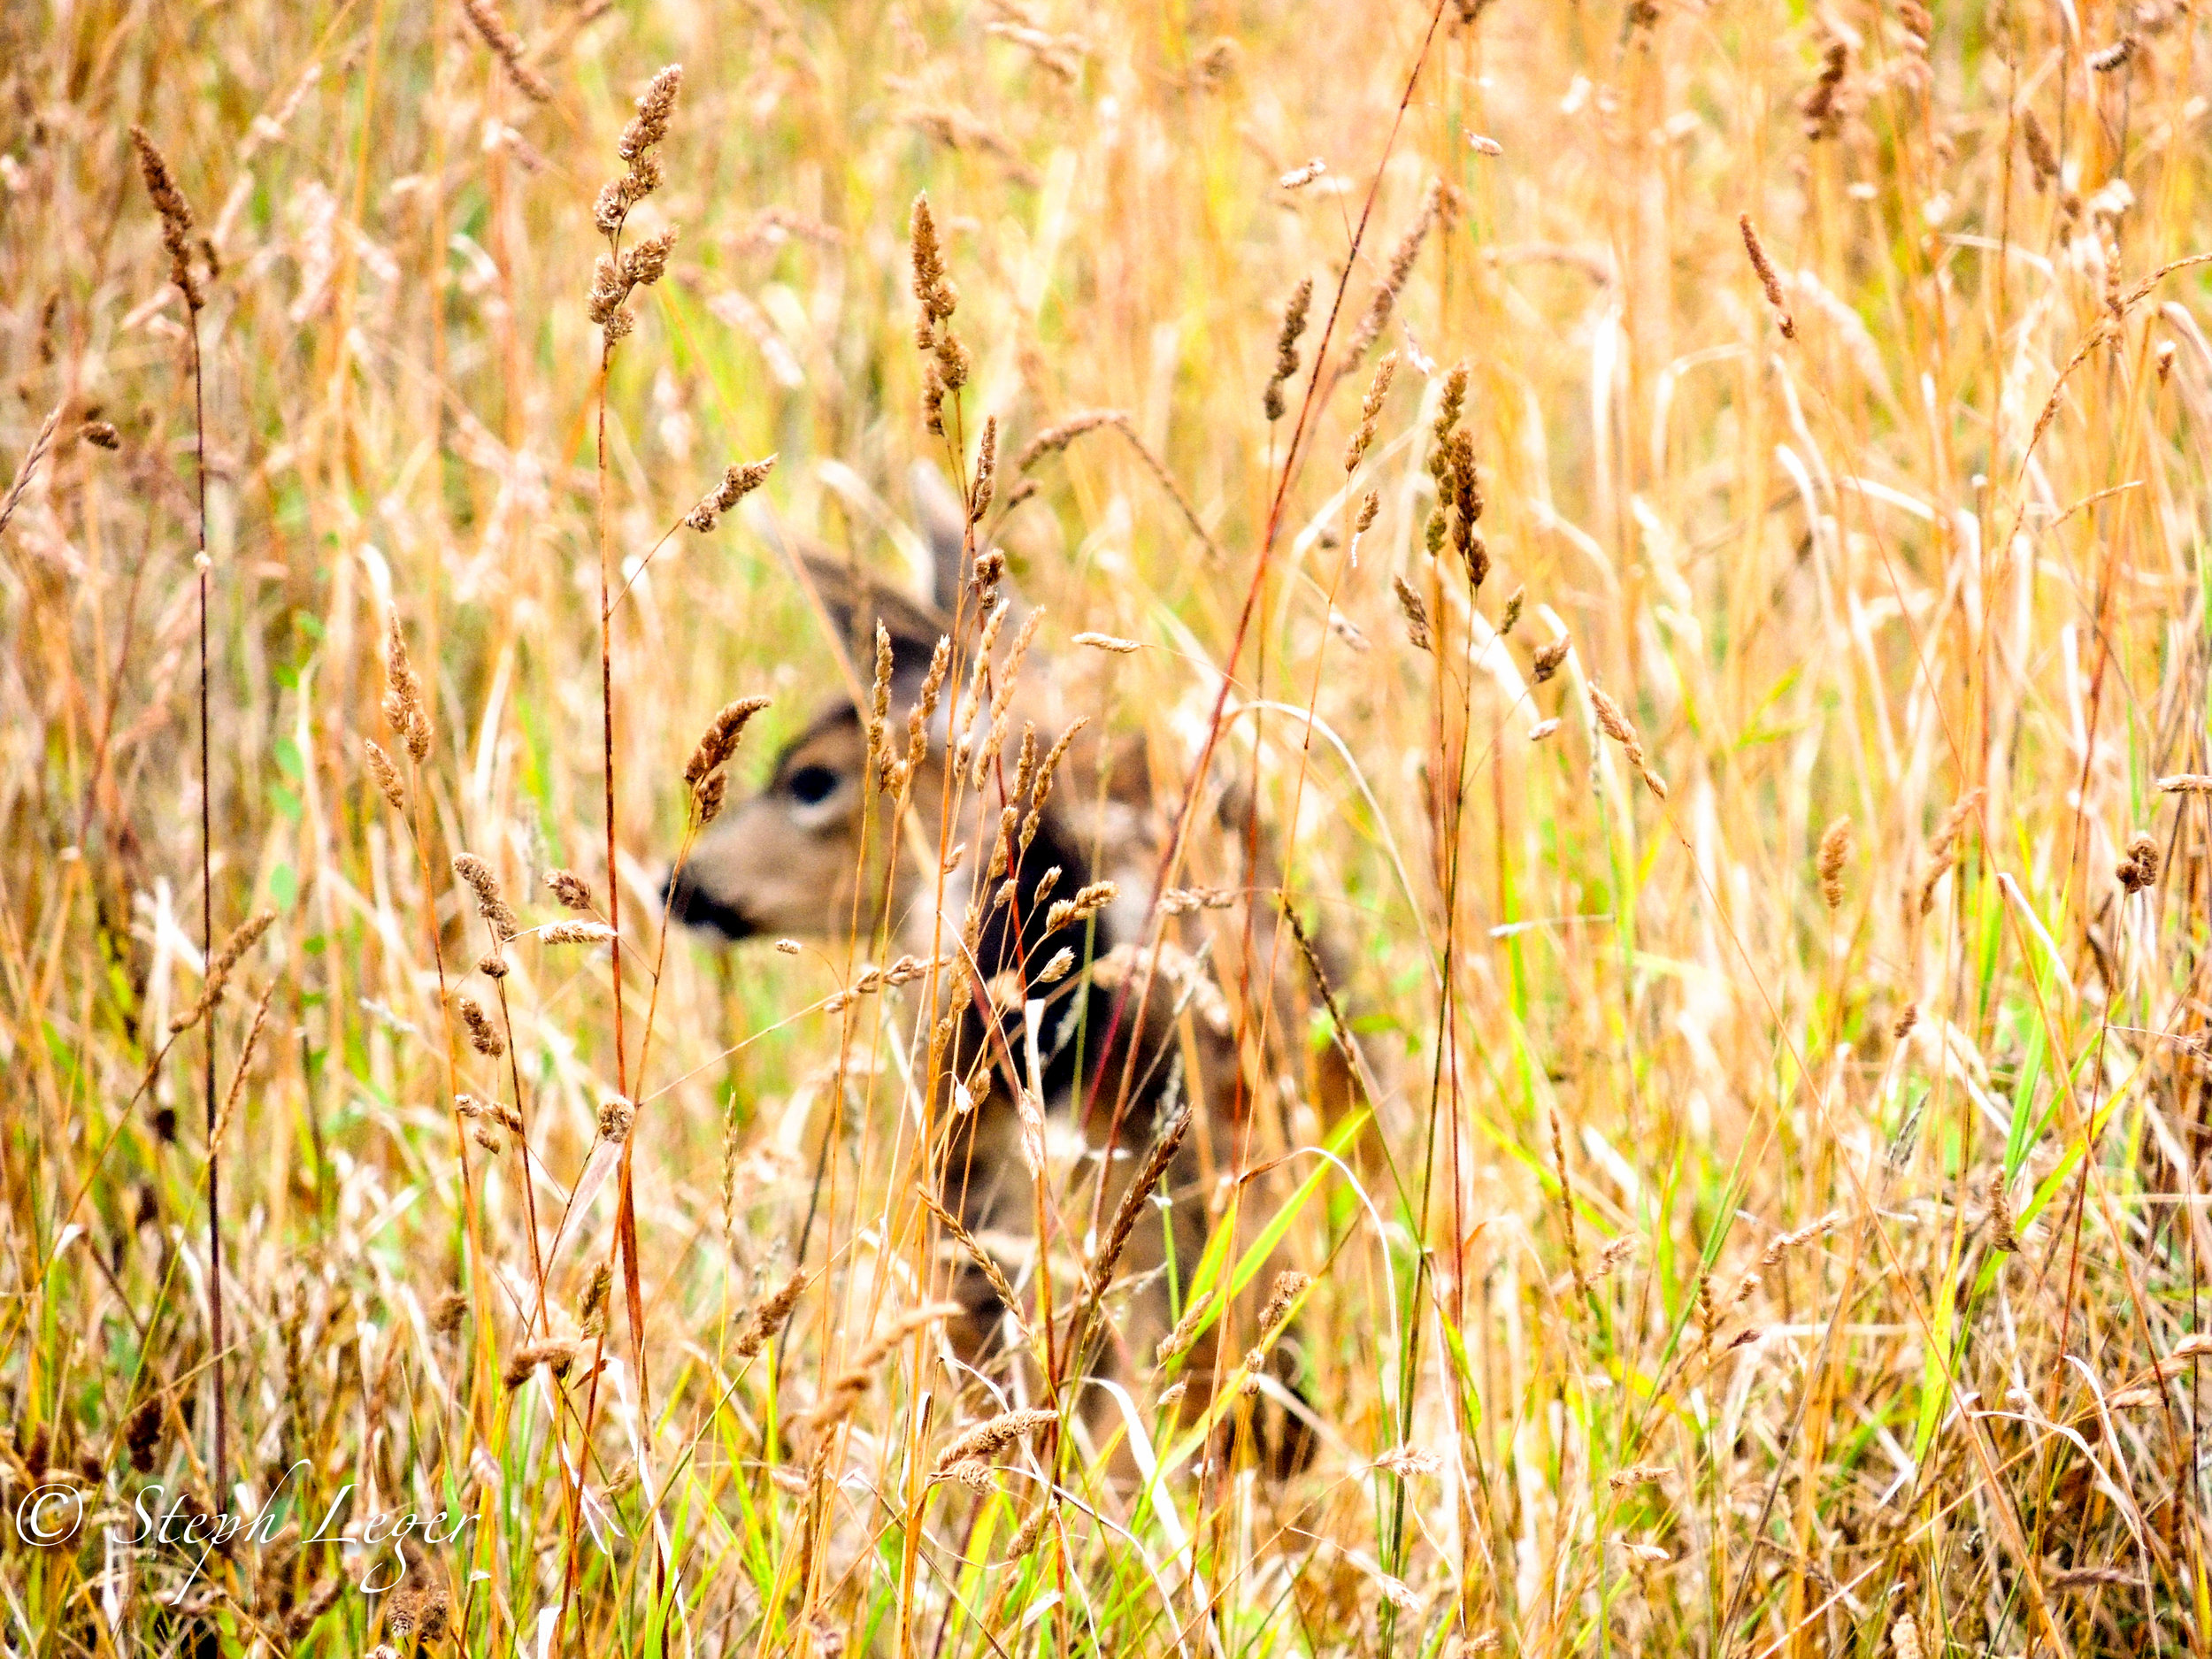 Black-tailed Deer (Odocoileus hemionus columbianus) fawn in tall grass - Protection Island, WA